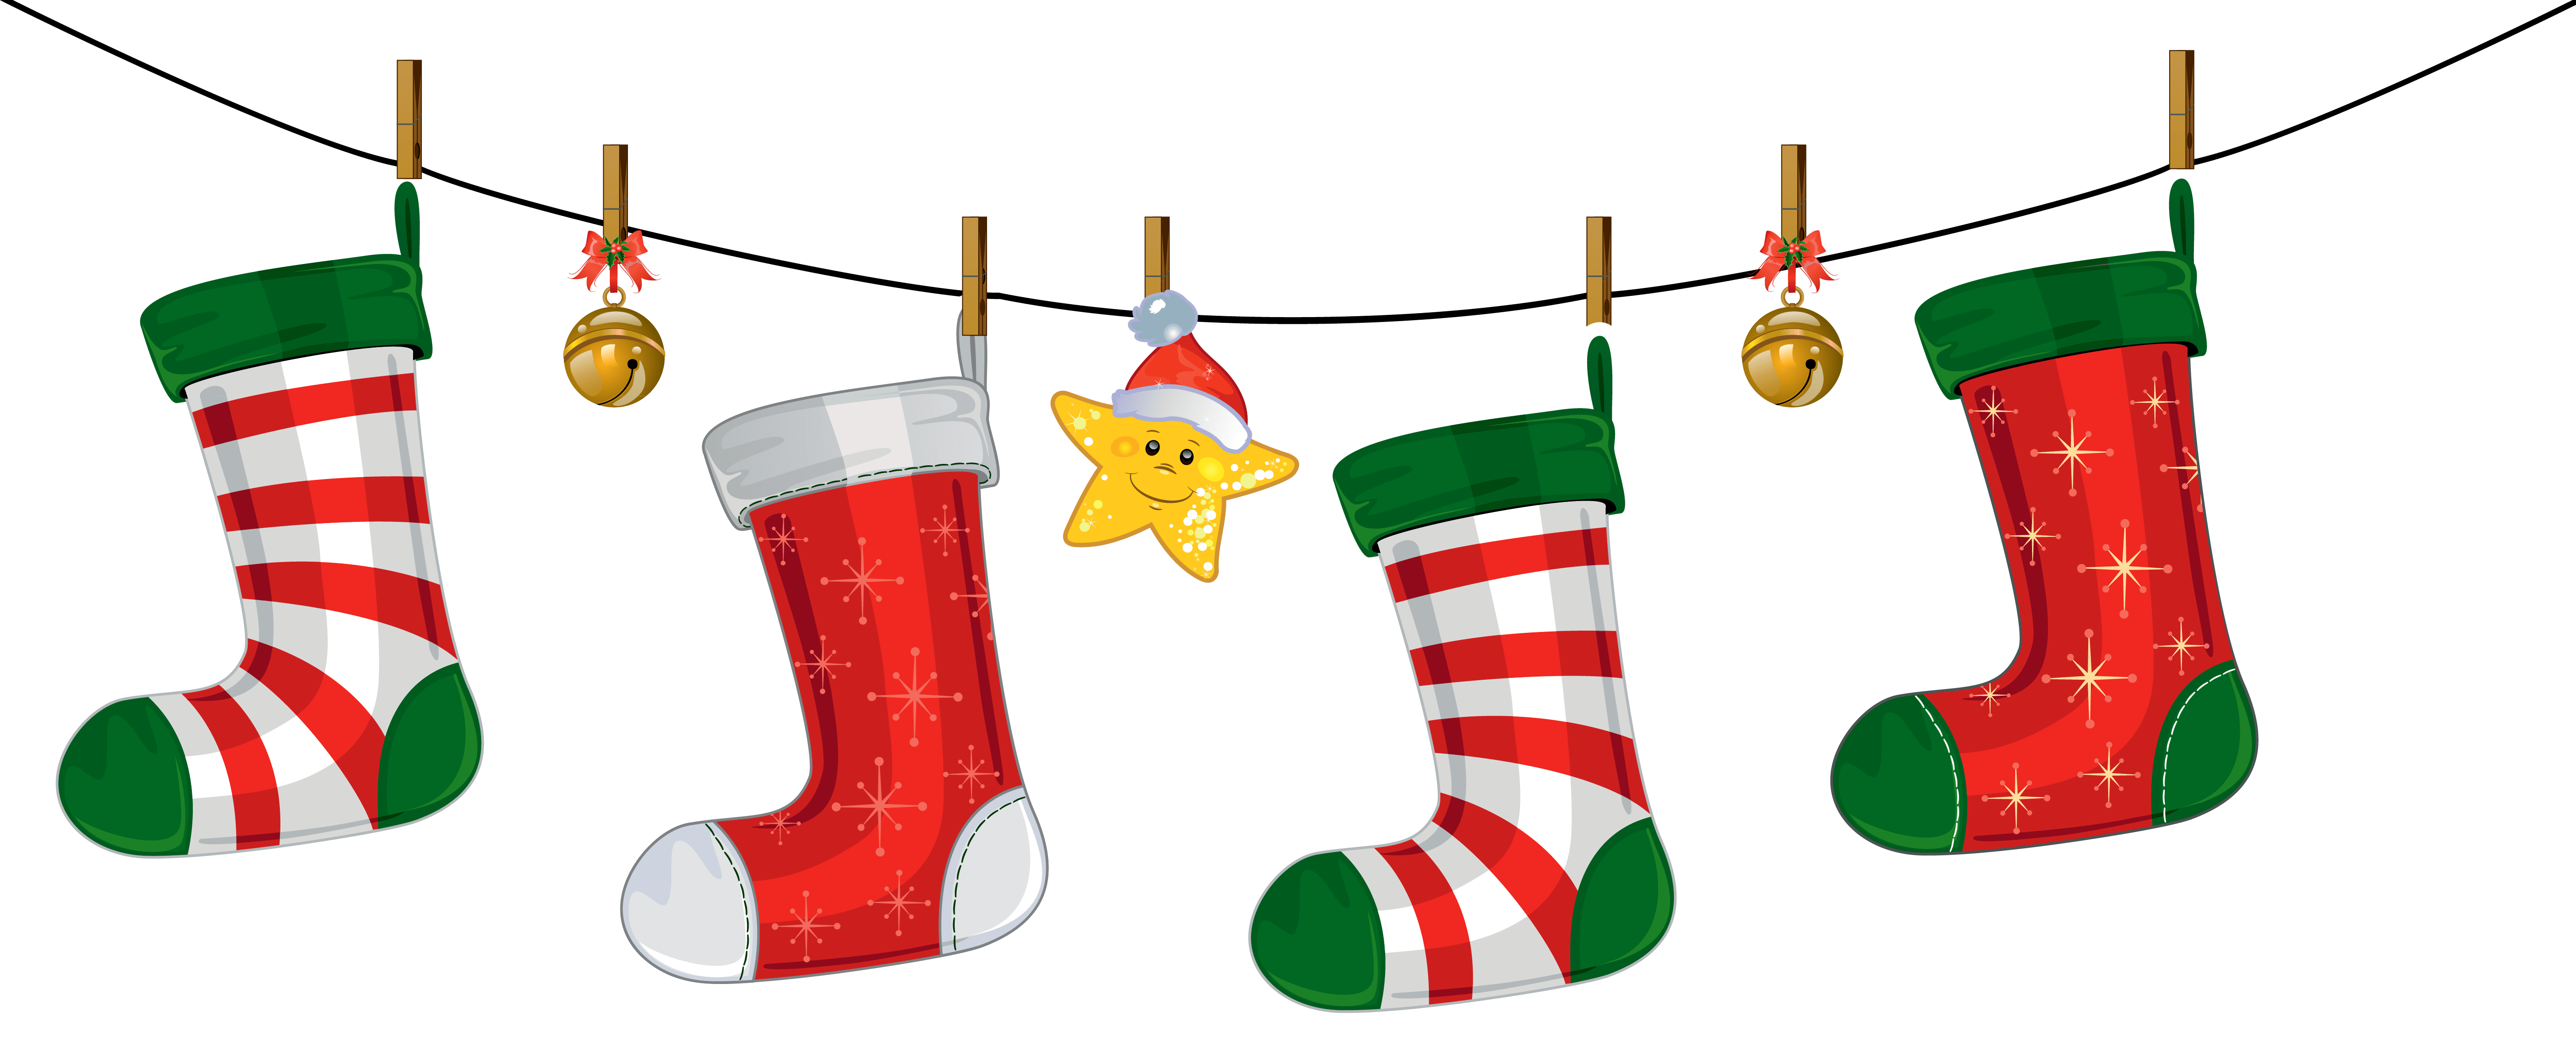 Christmas stockings fireplace clipart banner download Free Clipart Christmas Stocking at GetDrawings.com | Free for ... banner download